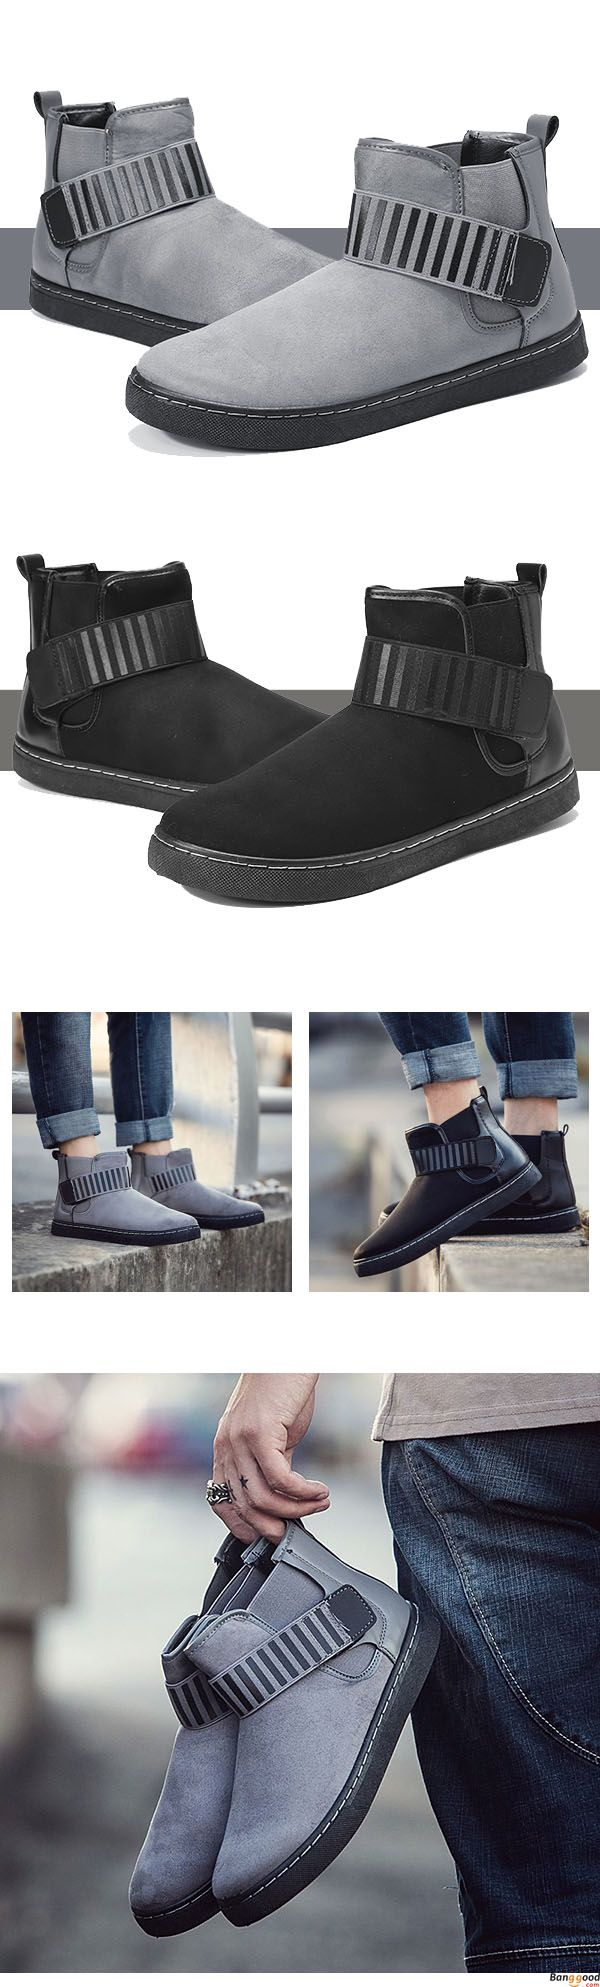 US$38.88 + Free Shipping.  2 colors available.  Men Hook Loop Stripe Elastic Band Comfortable Suede Ankle Boots . Men formal shoes, short boots, casual comfortable shoes, oxford shoes, boots, Fashion and chic, casual shoes, men's flats, oxford boots,leather short boots, men's style, chic style, fashion style.  Shop at banggood with super affordable price. #men'sshoes#men'sstyle#chic#style#fashion#style#wintershoes#casual#shoes#casualshoes#boots#oxfordshoes#loafers#flats#shortboots